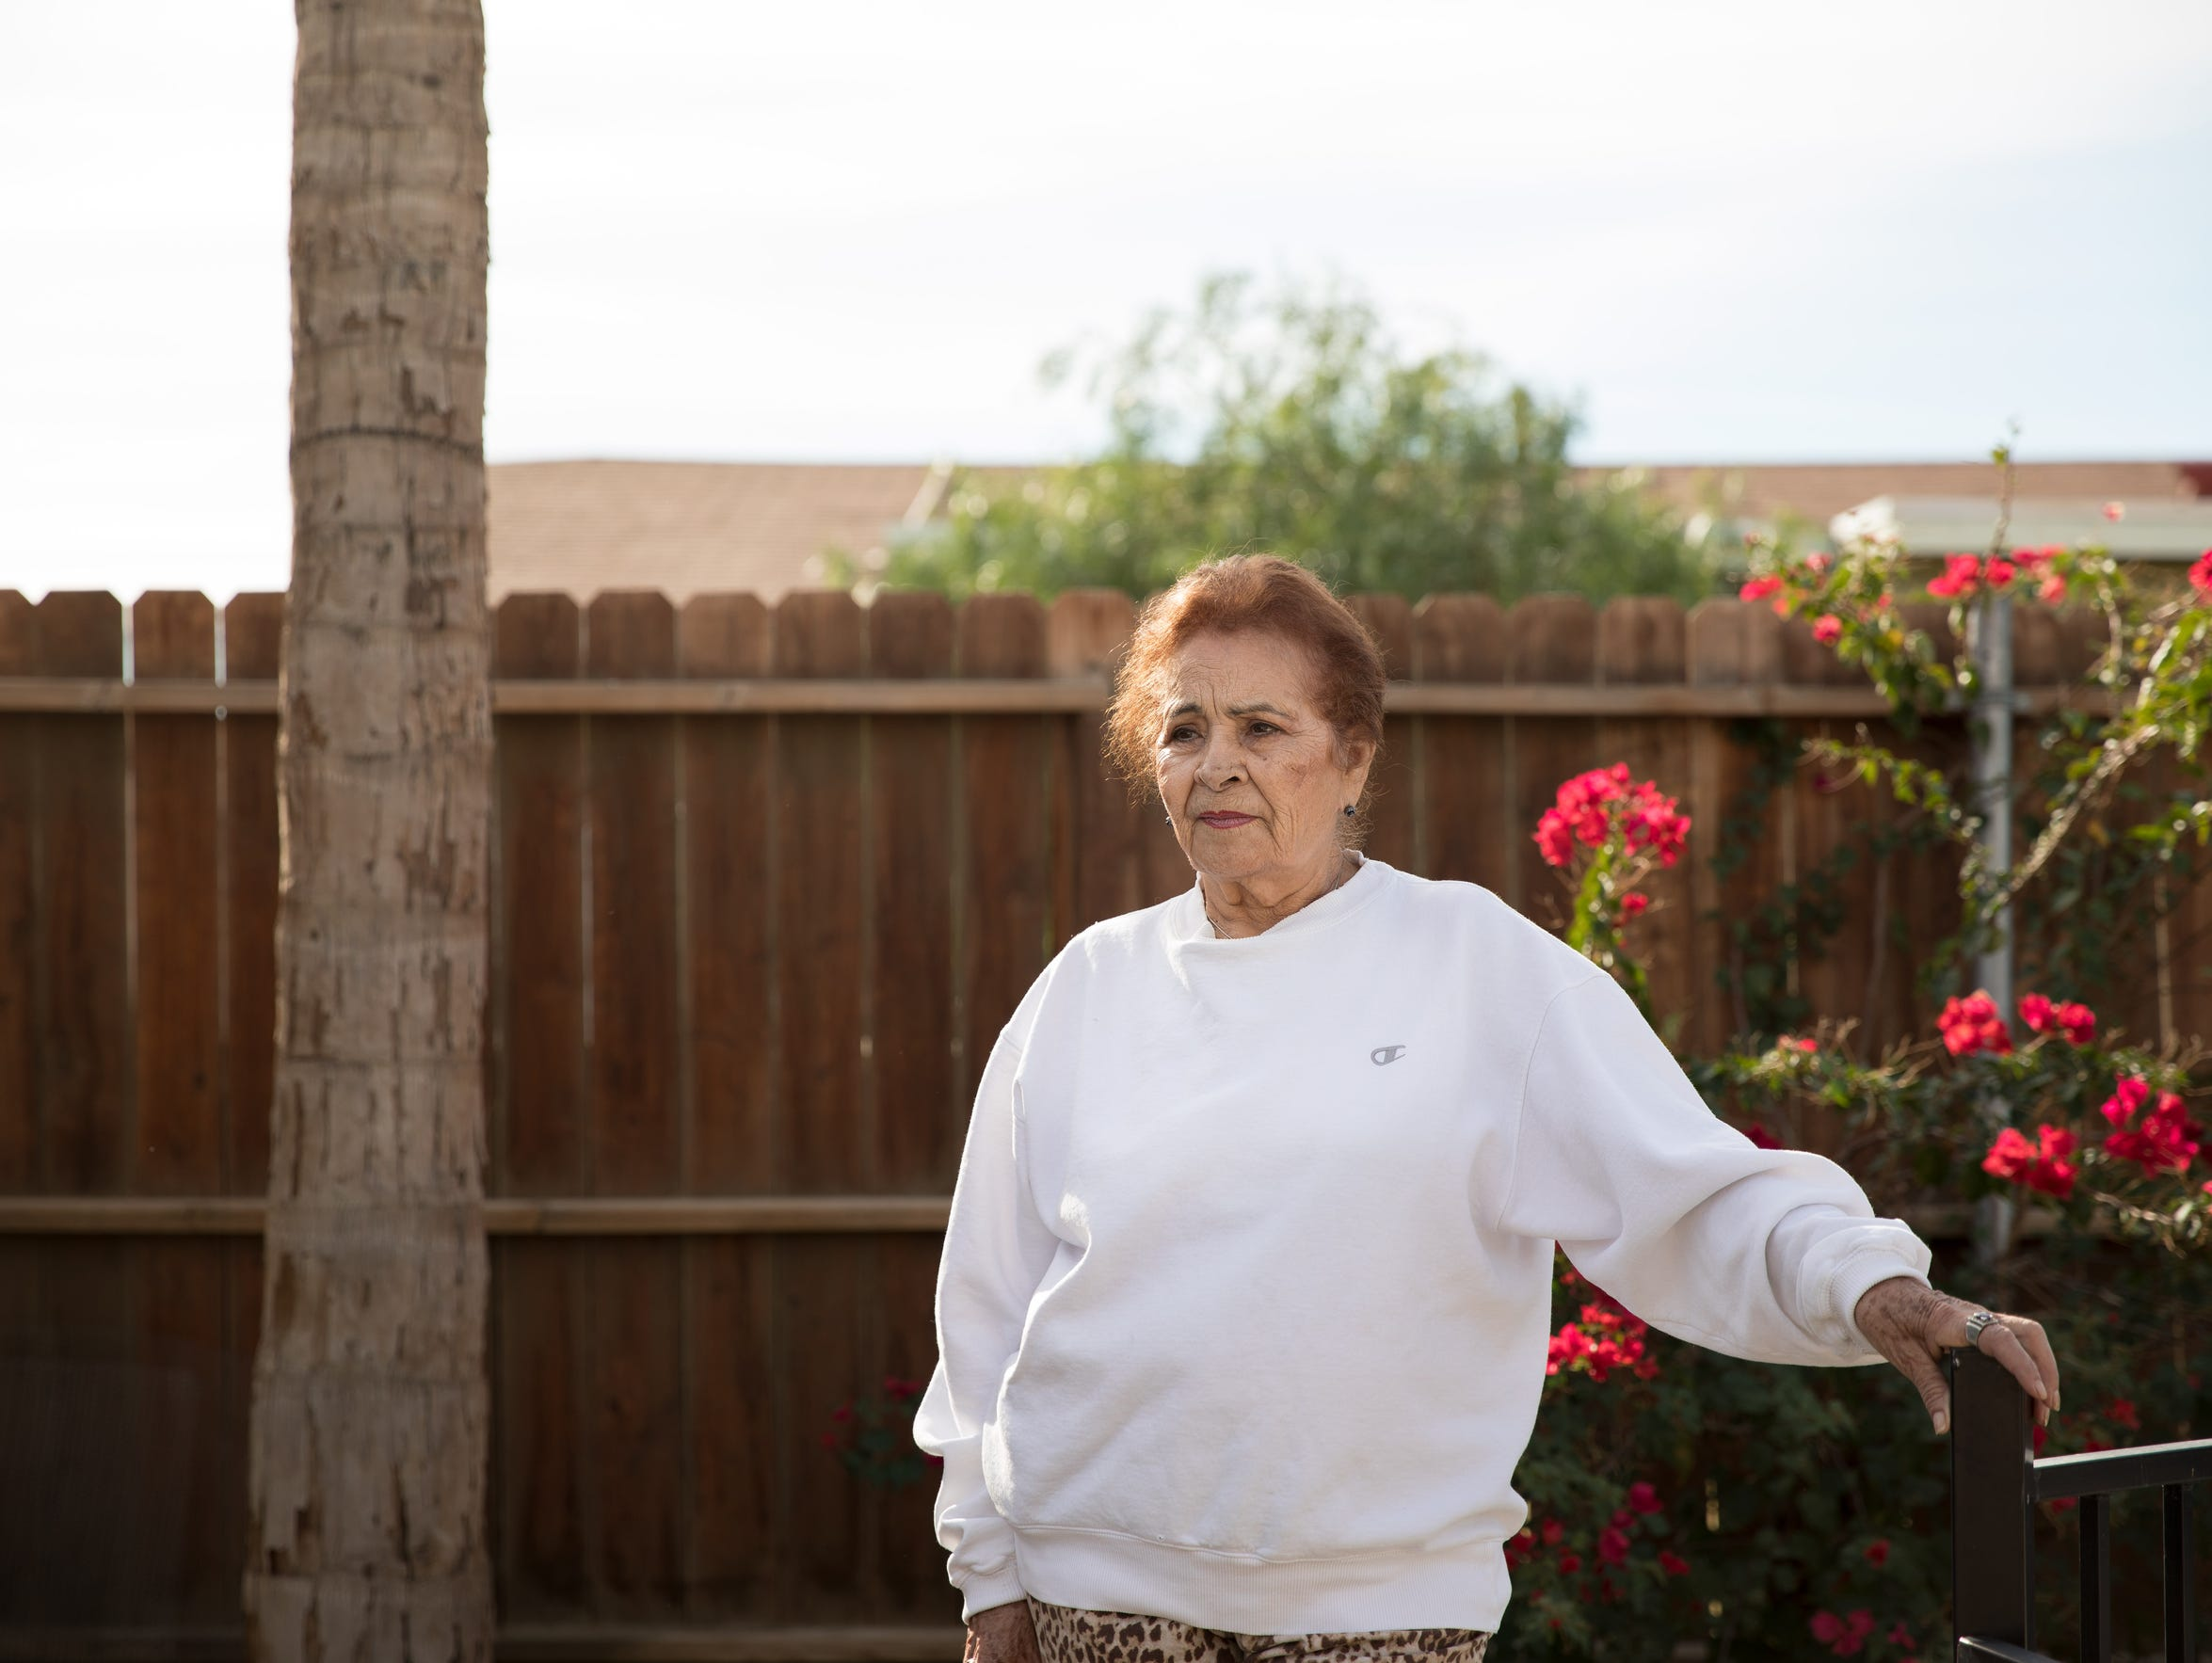 Ramona Morales, a Coachella Valley resident who has